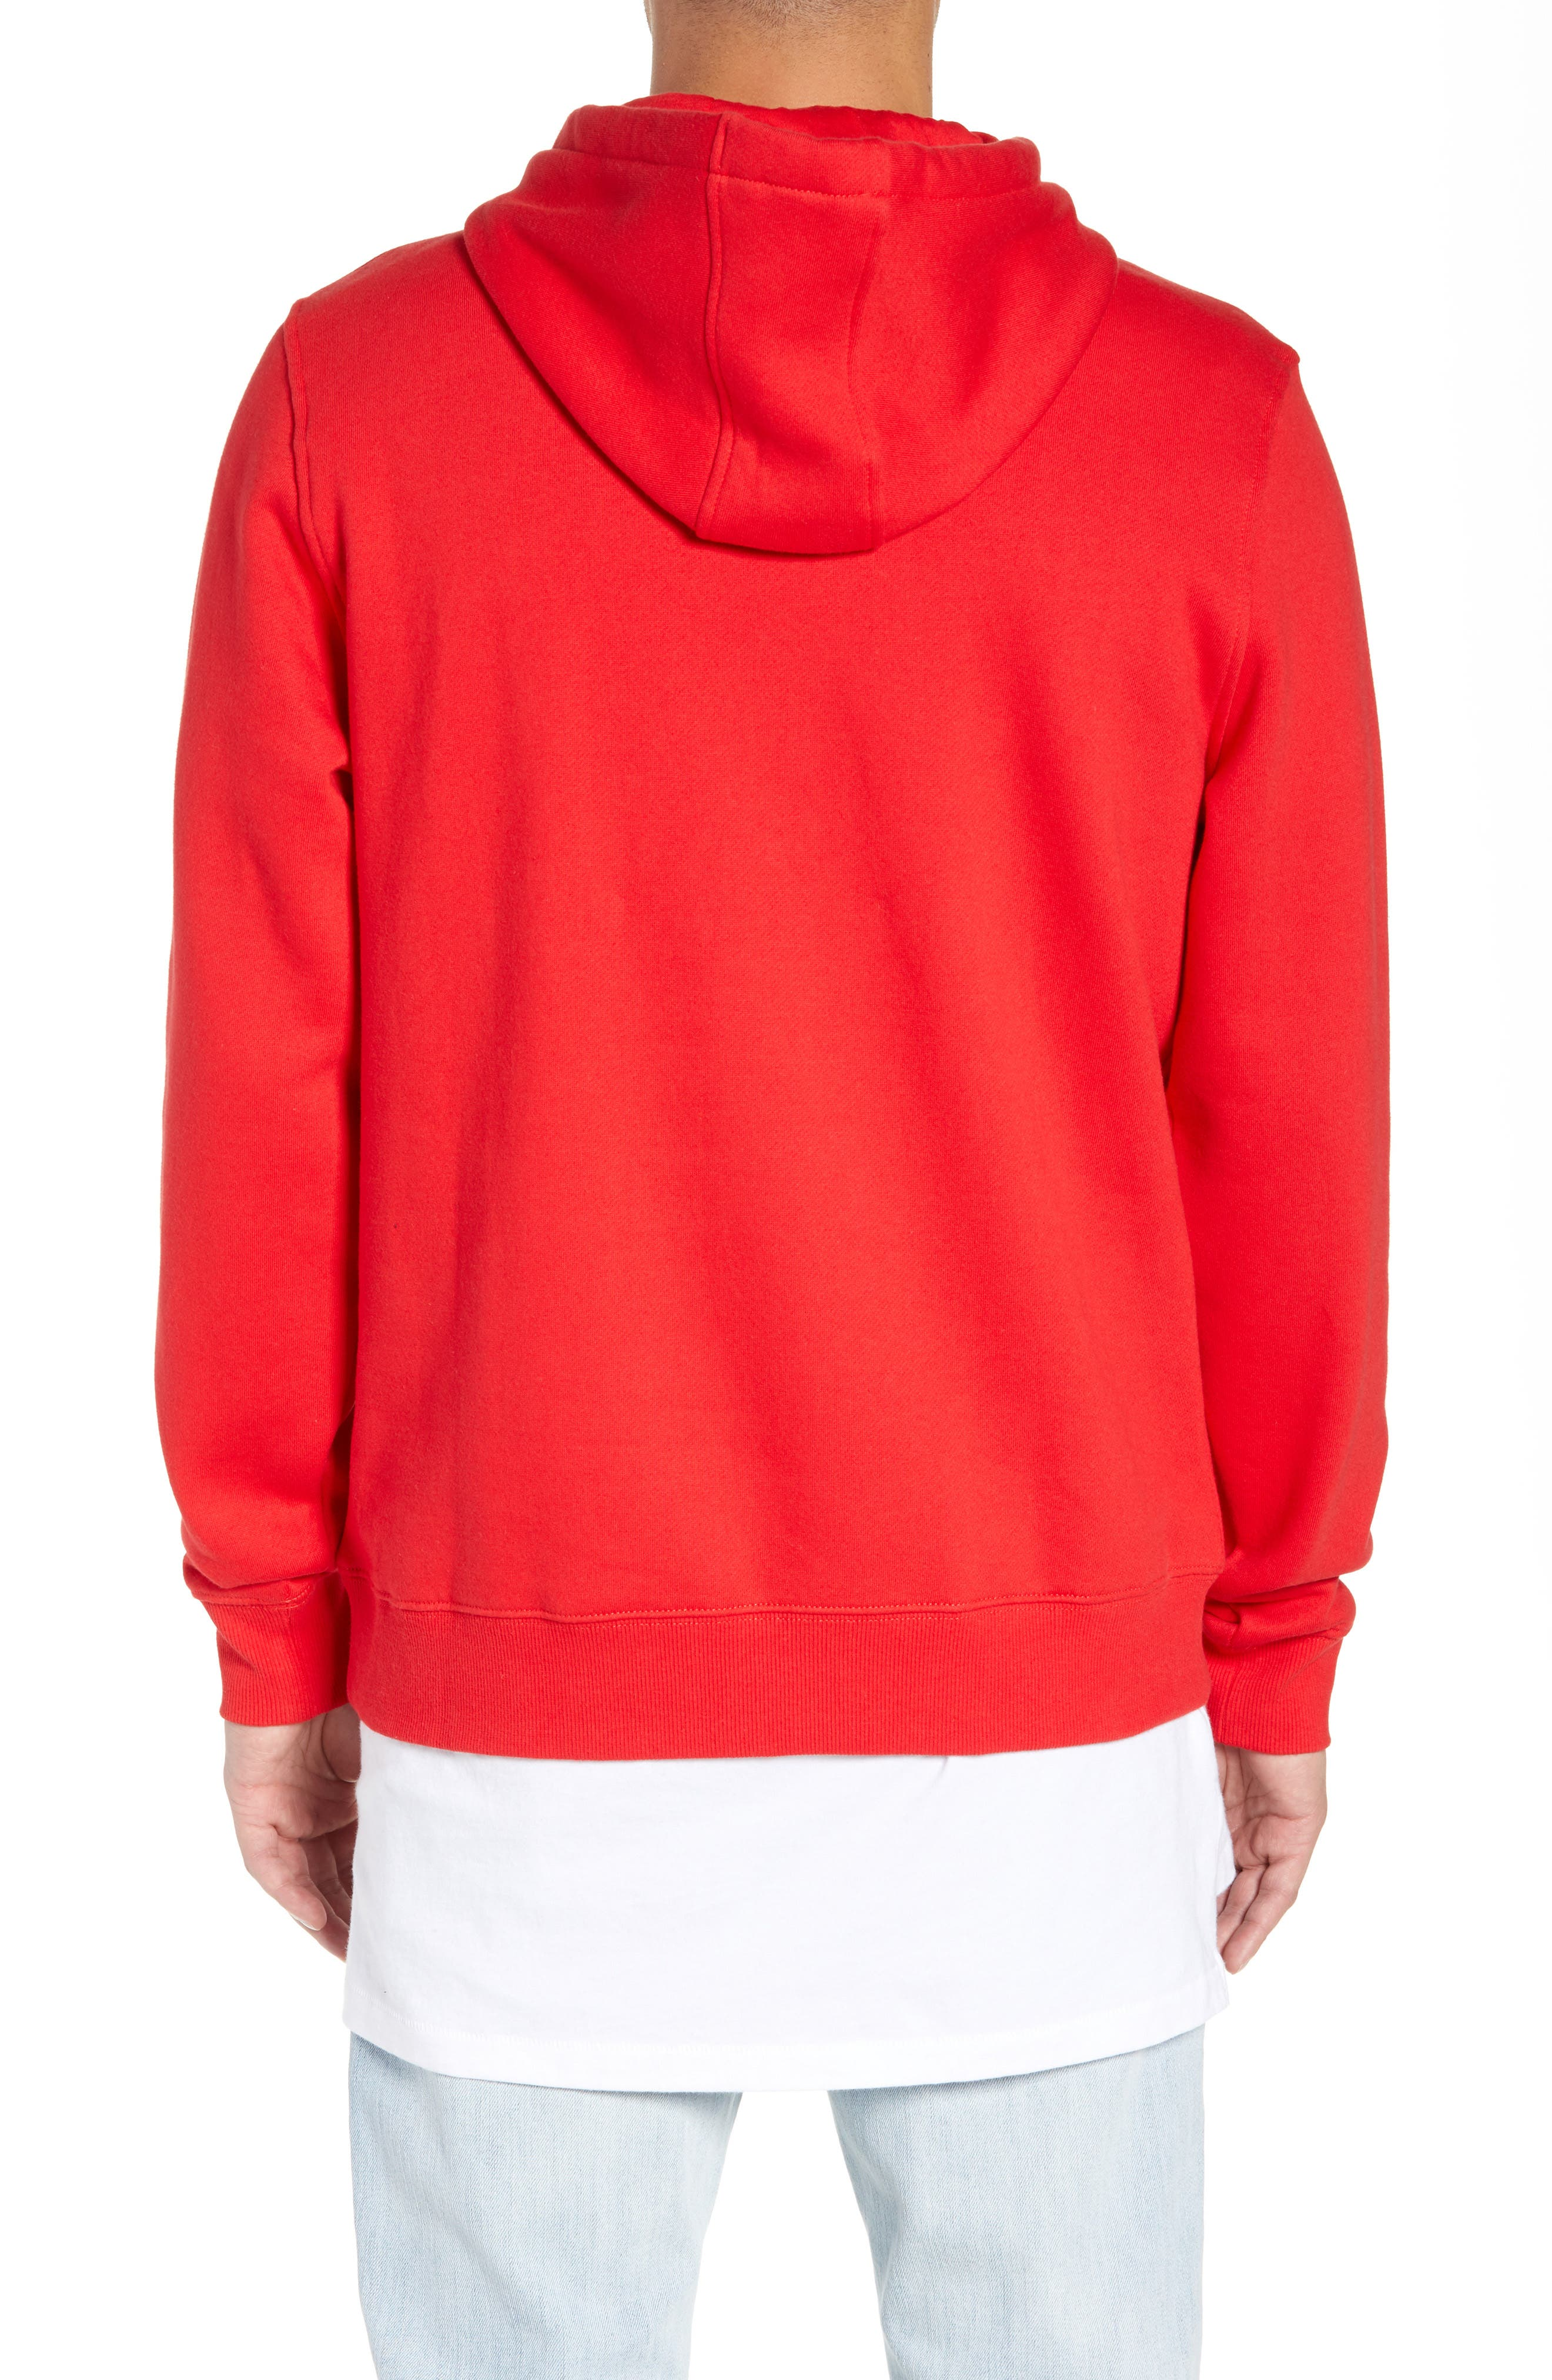 FILA, Logo Graphic Hooded Sweatshirt, Alternate thumbnail 2, color, CHINESE RED/ WHITE/ NAVY